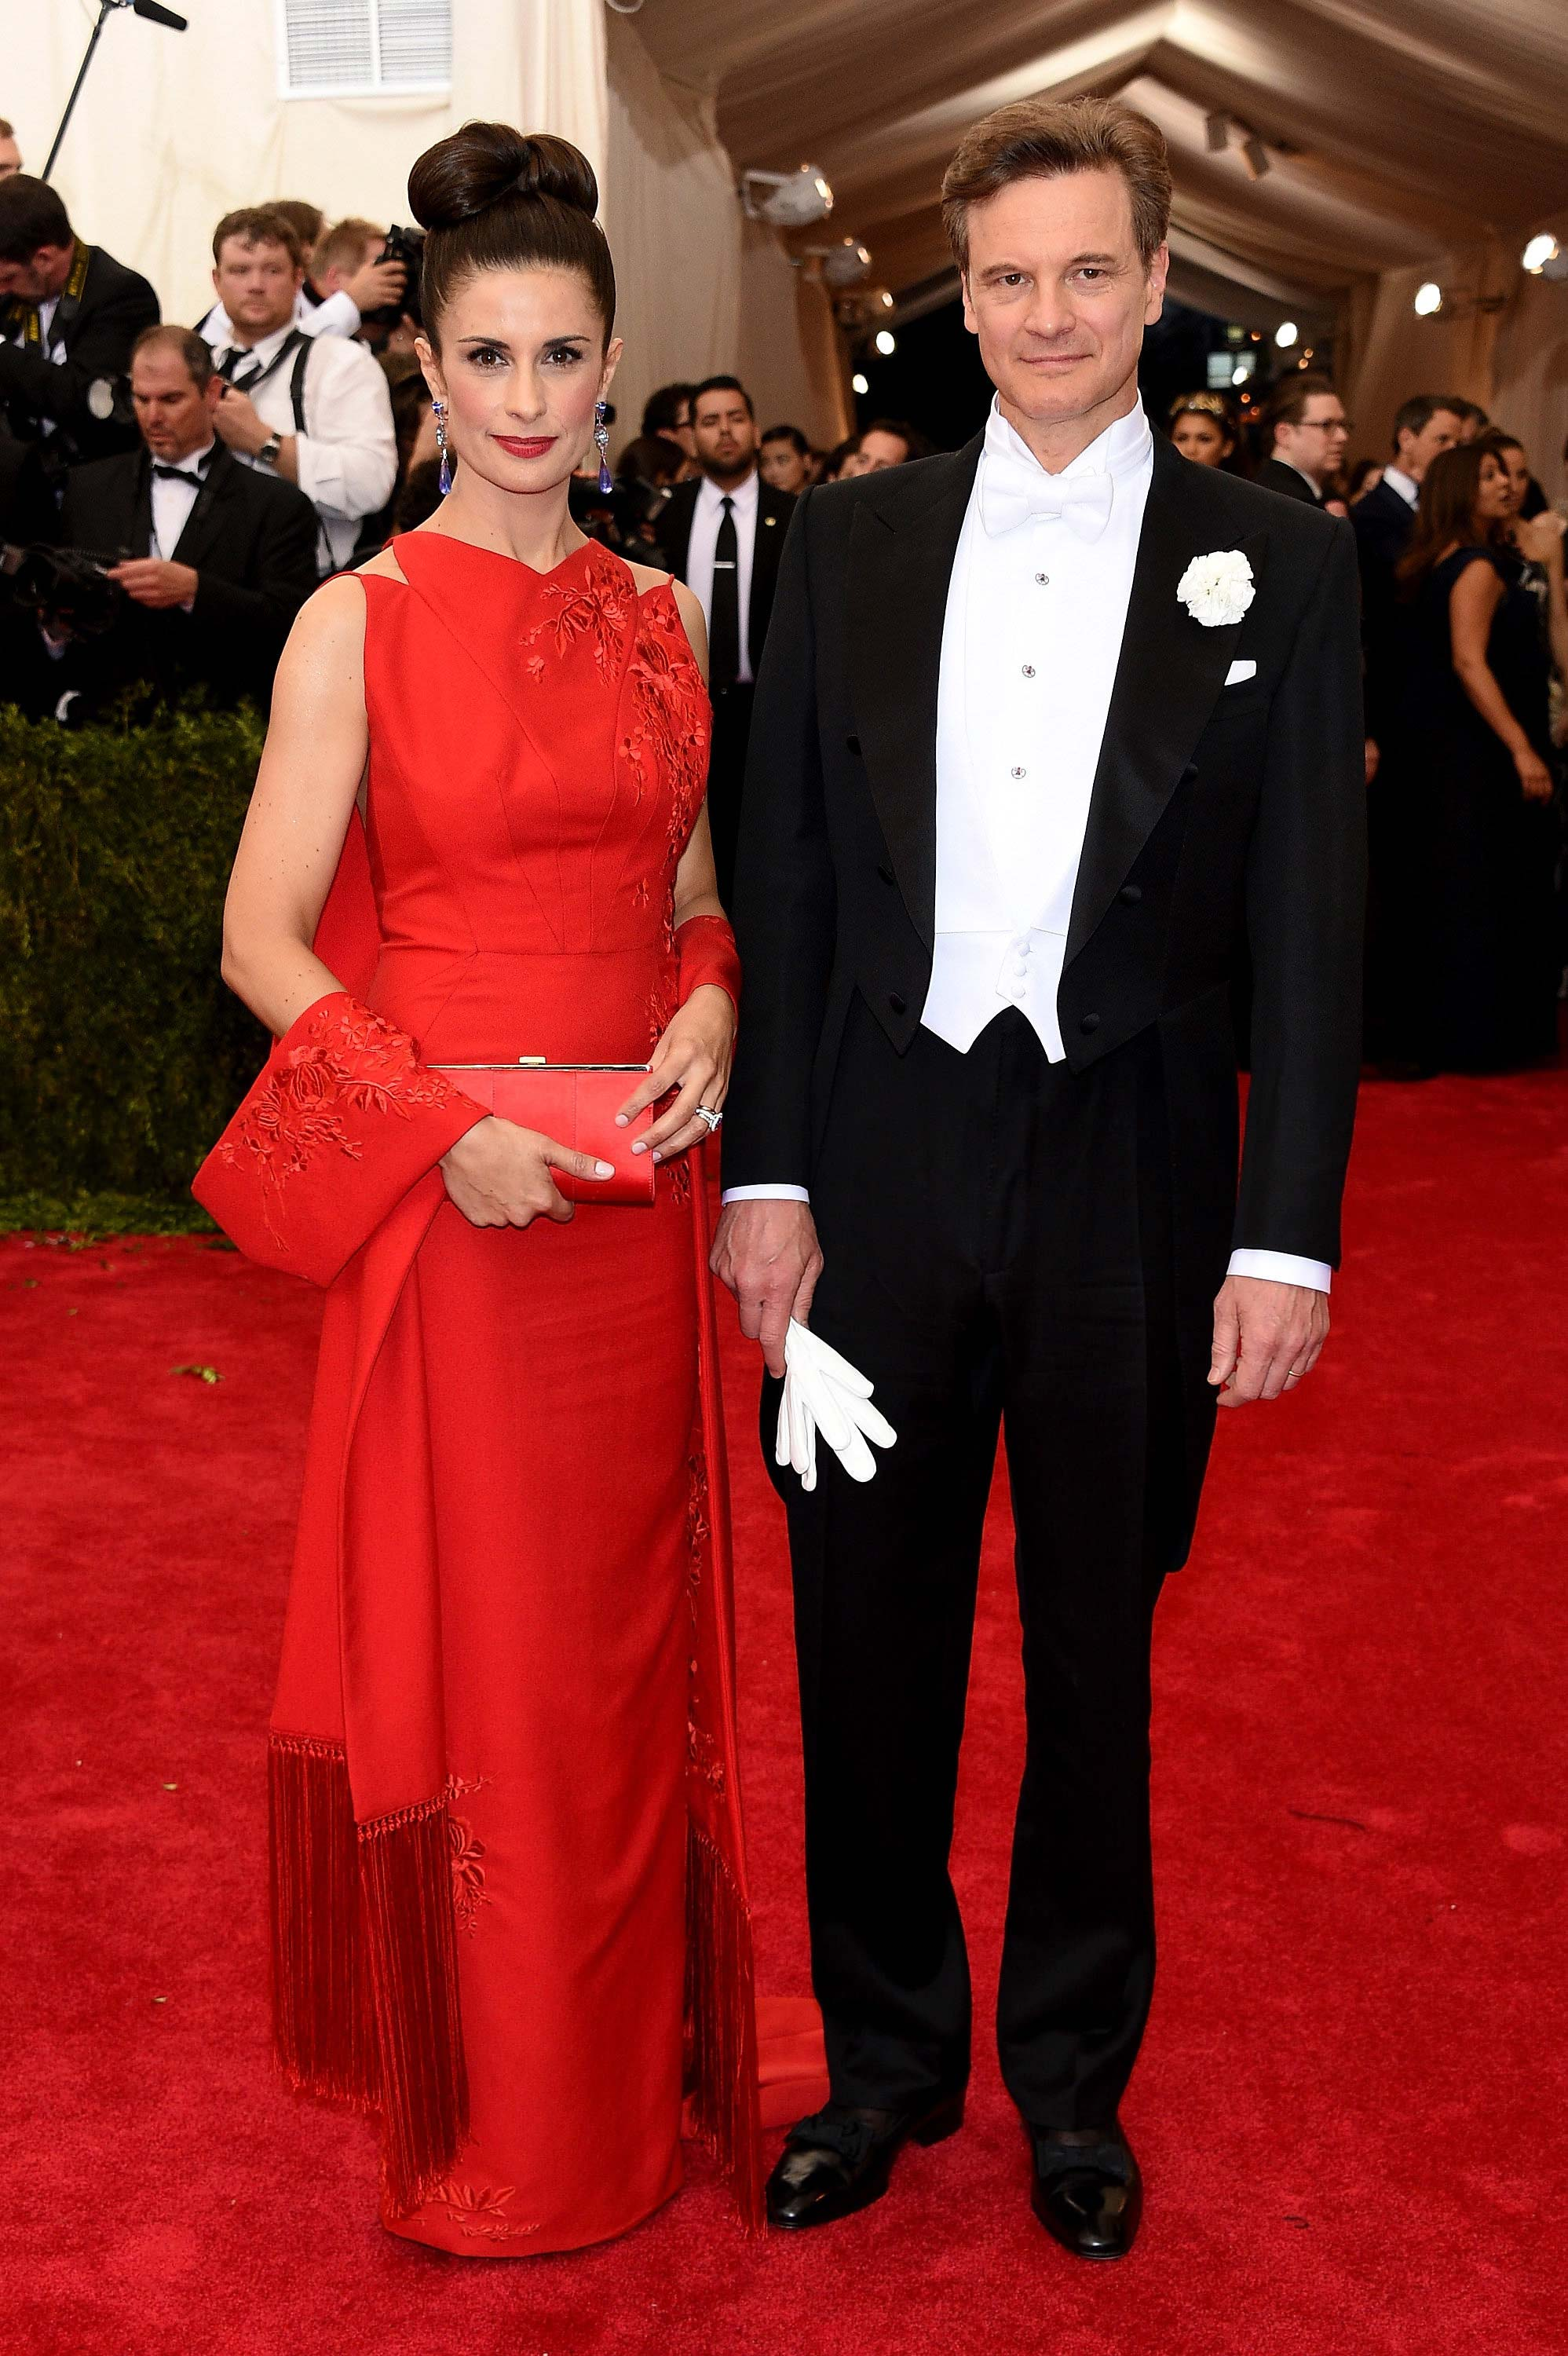 04.05.2015 - Met Gala - Colin and Livia Firth - Makeup hair Massimo Serini